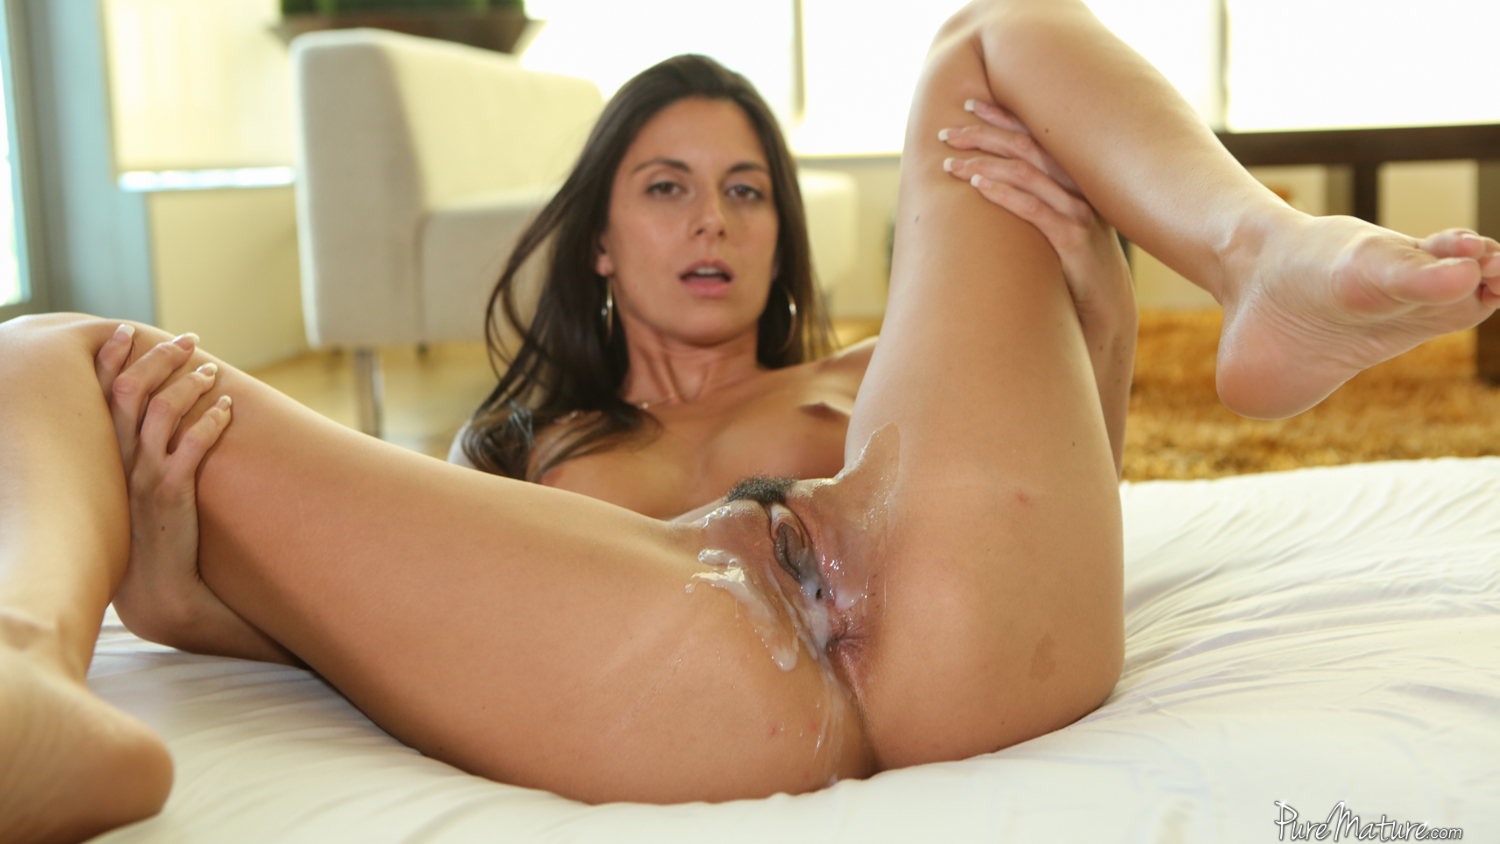 Victoria rose anal pussy